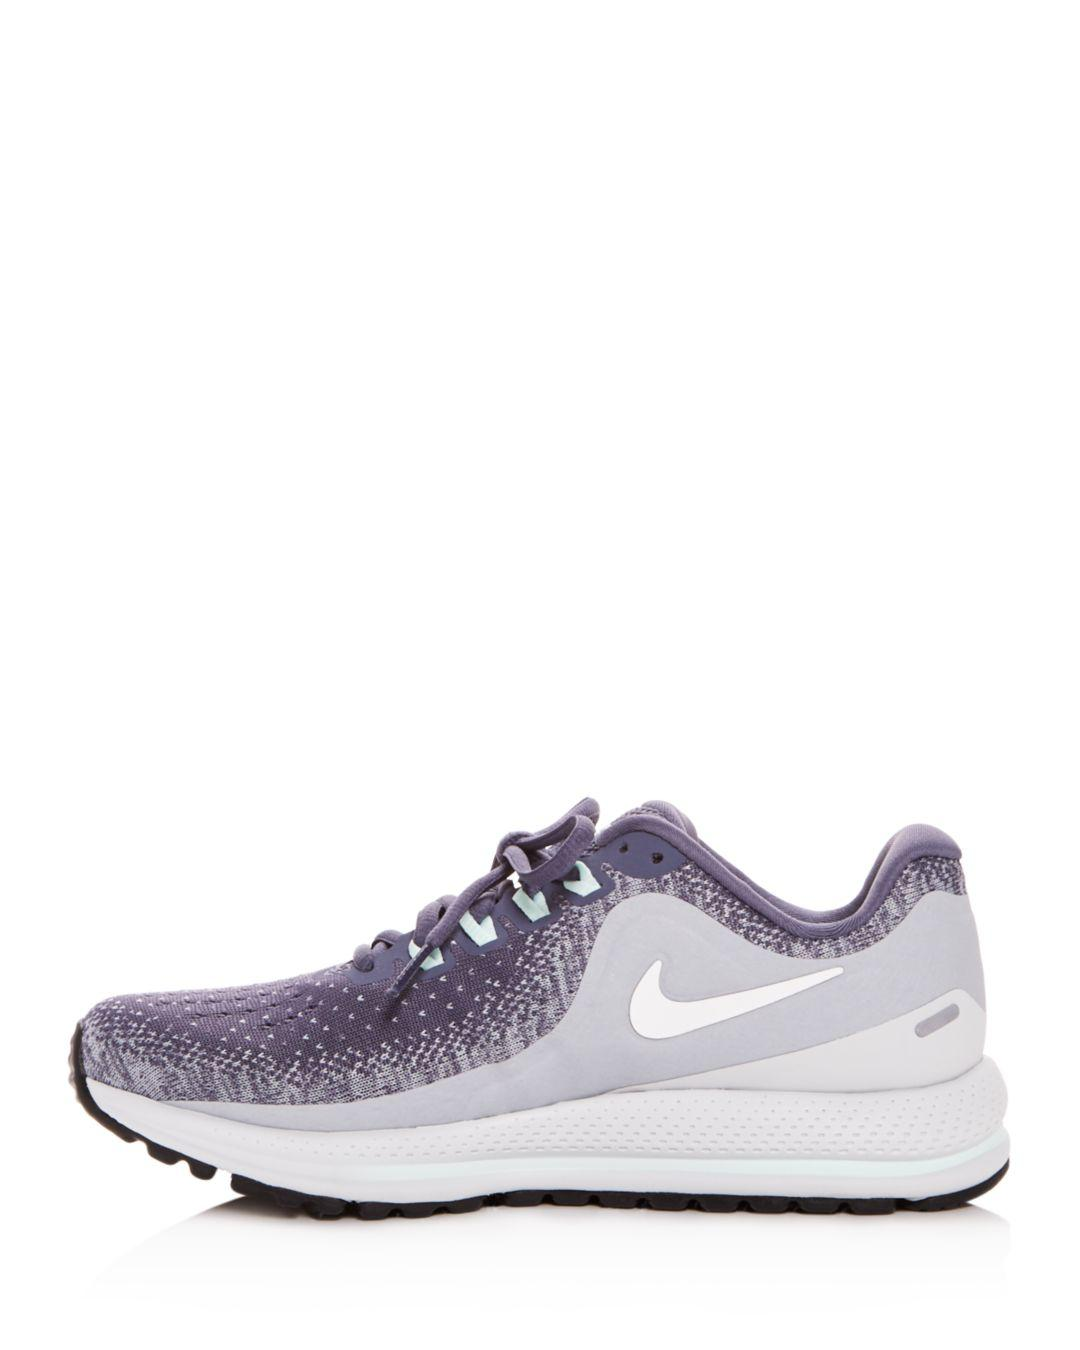 half off ccbca f4b76 Lyst - Nike Women s Air Zoom Vomero Lace Up Sneakers in Purple